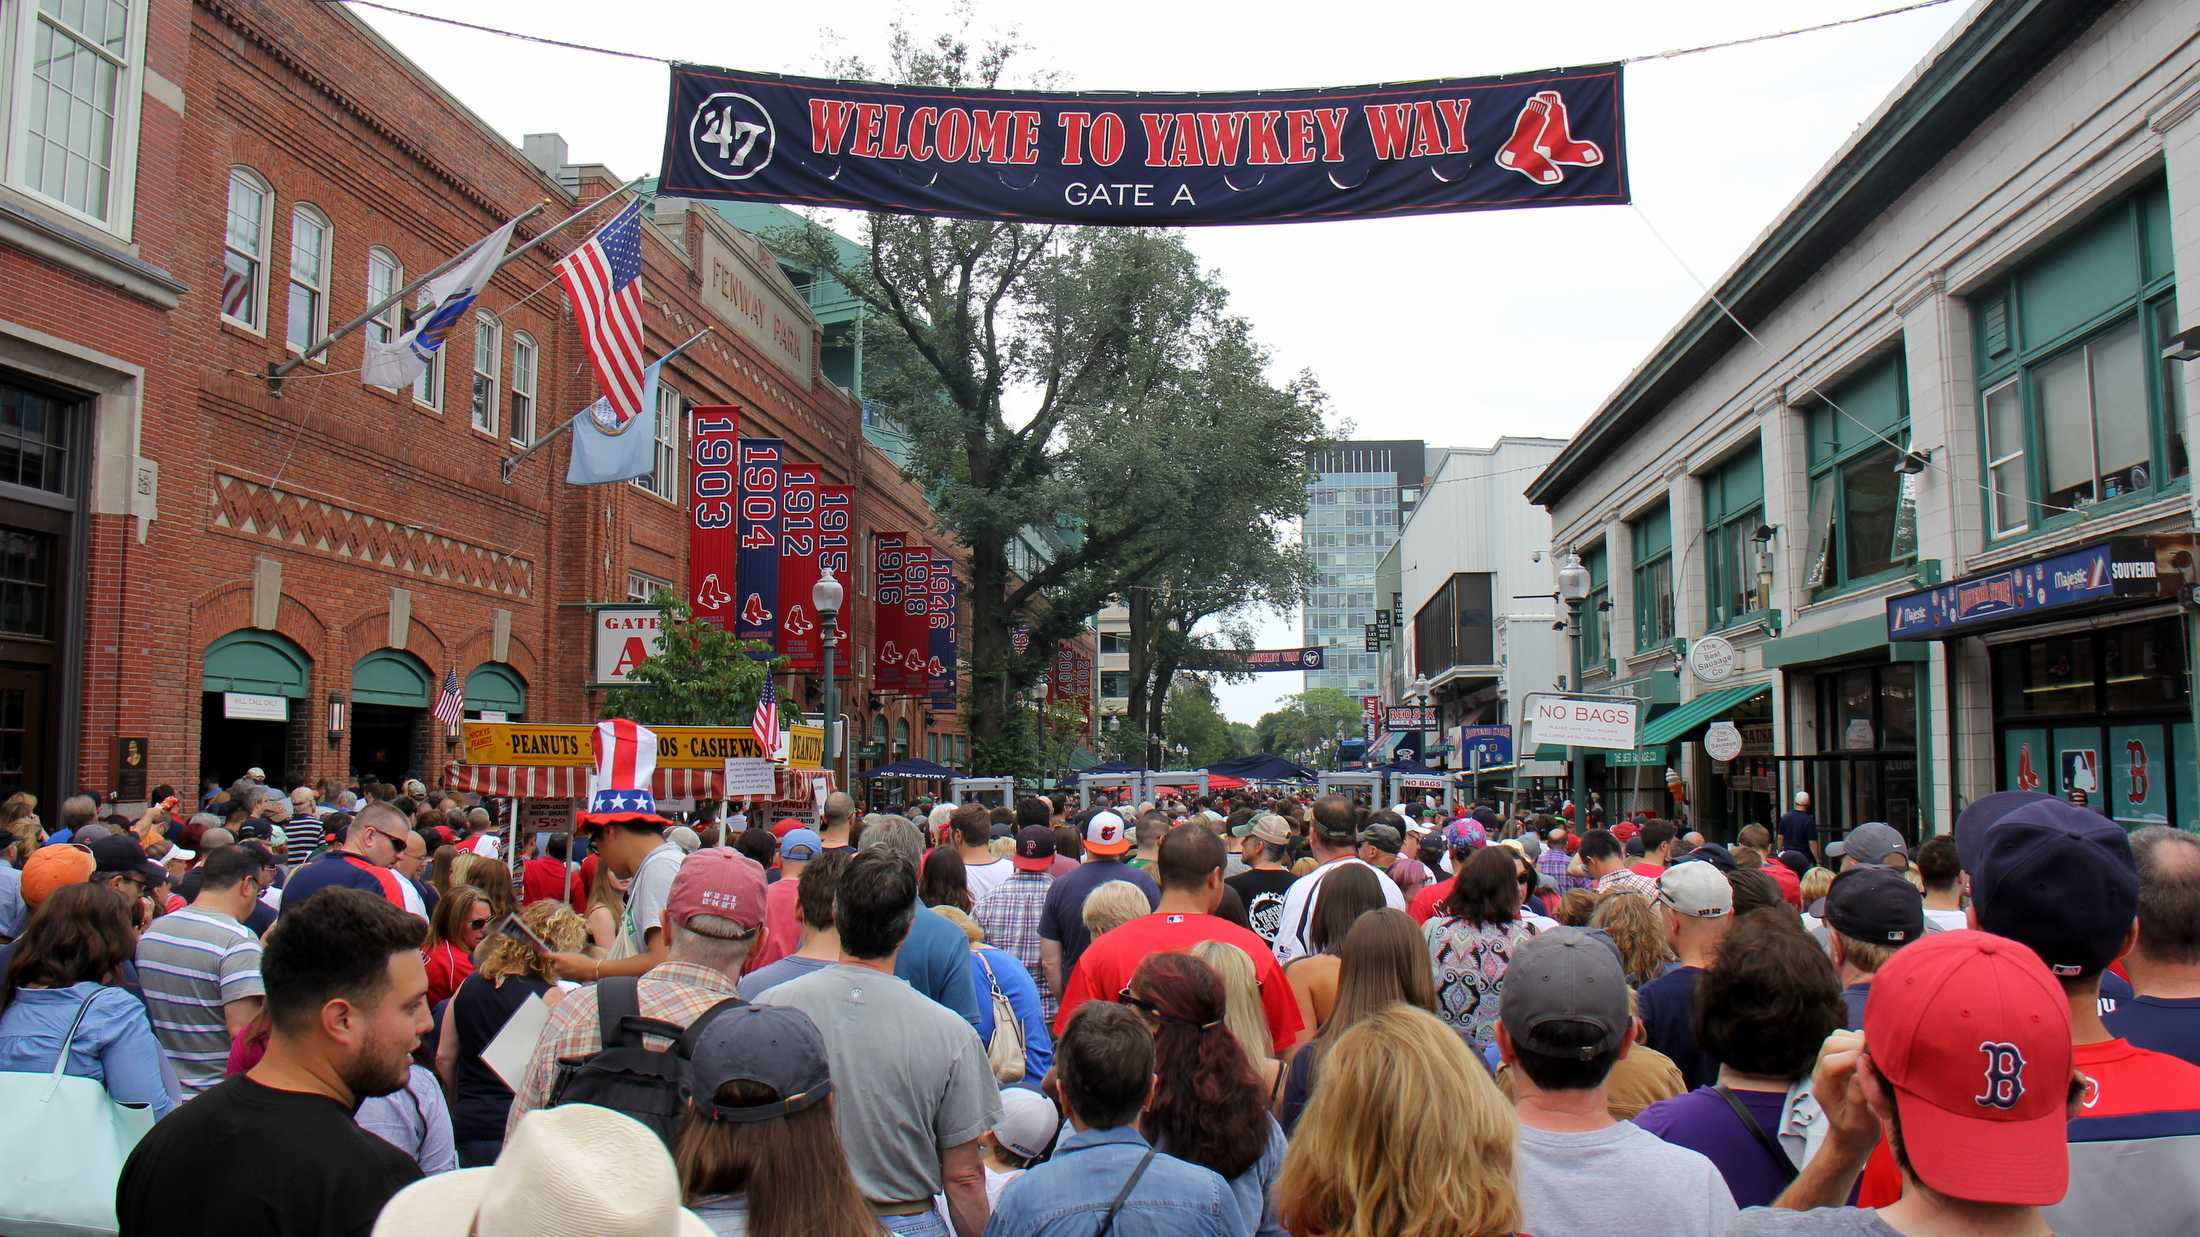 Red Sox owner wants to rename Yawkey Way for racism reasons